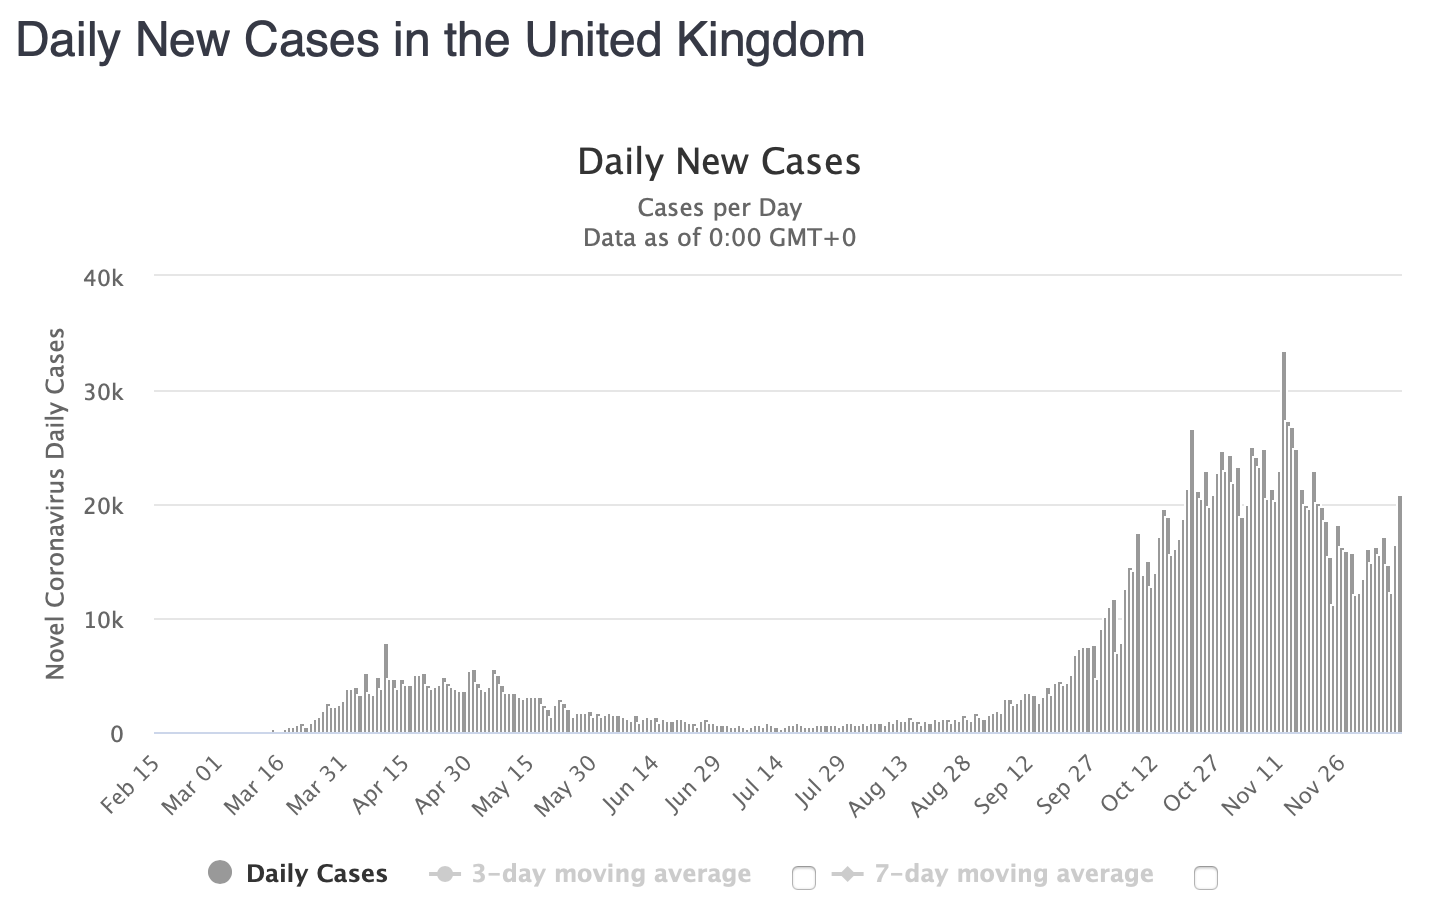 Worldometers Daily new cases in the UK up to December 11th